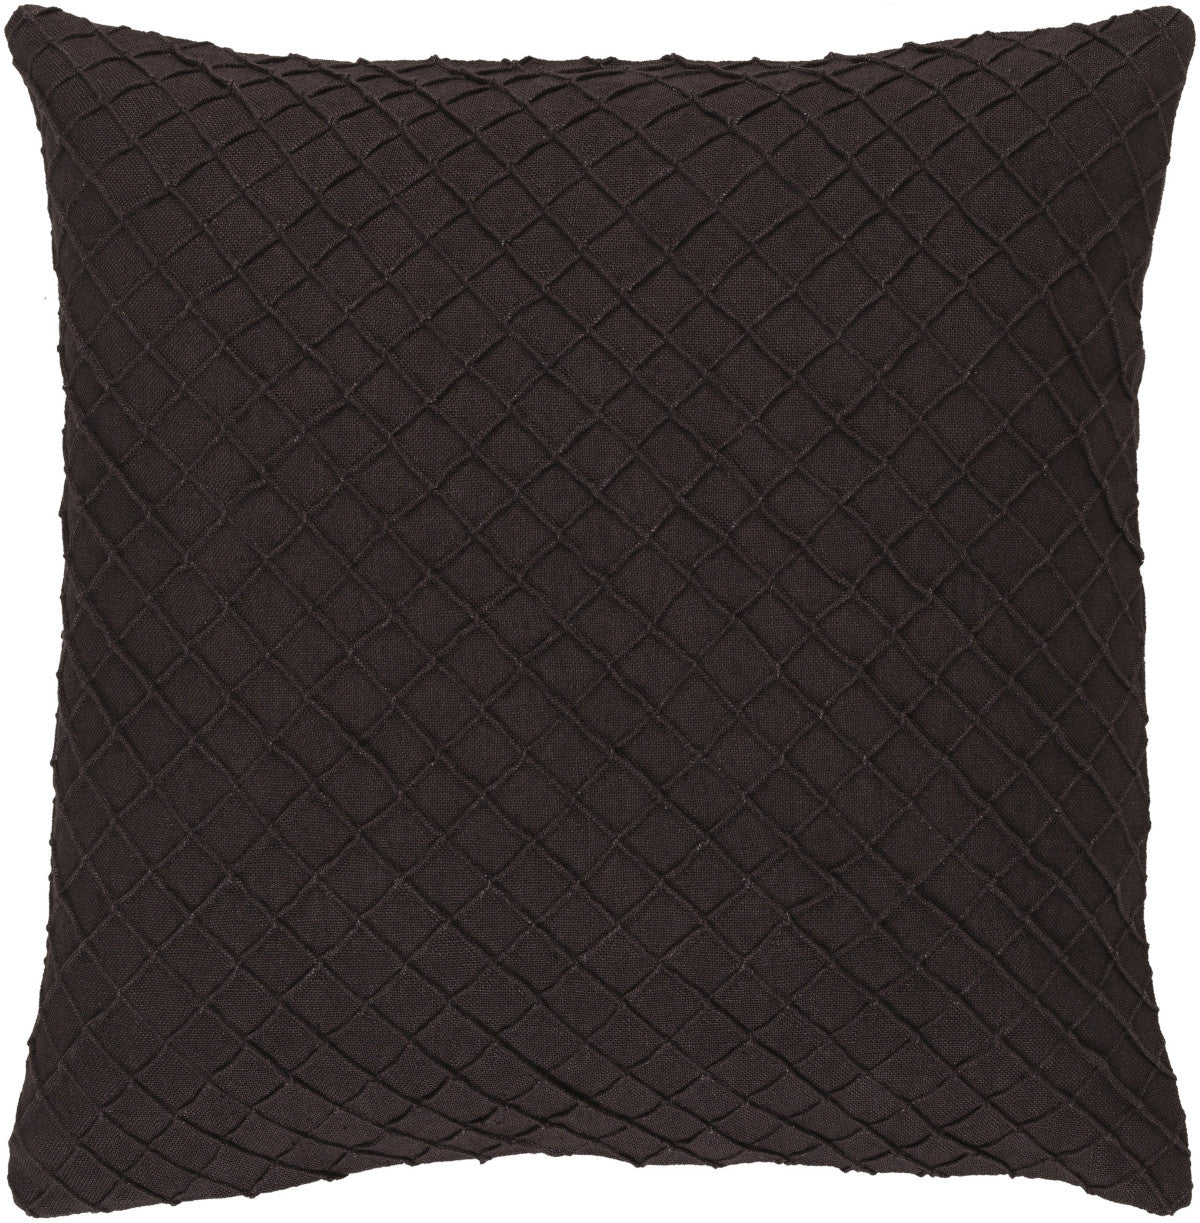 Surya Wright WR001 Pillow